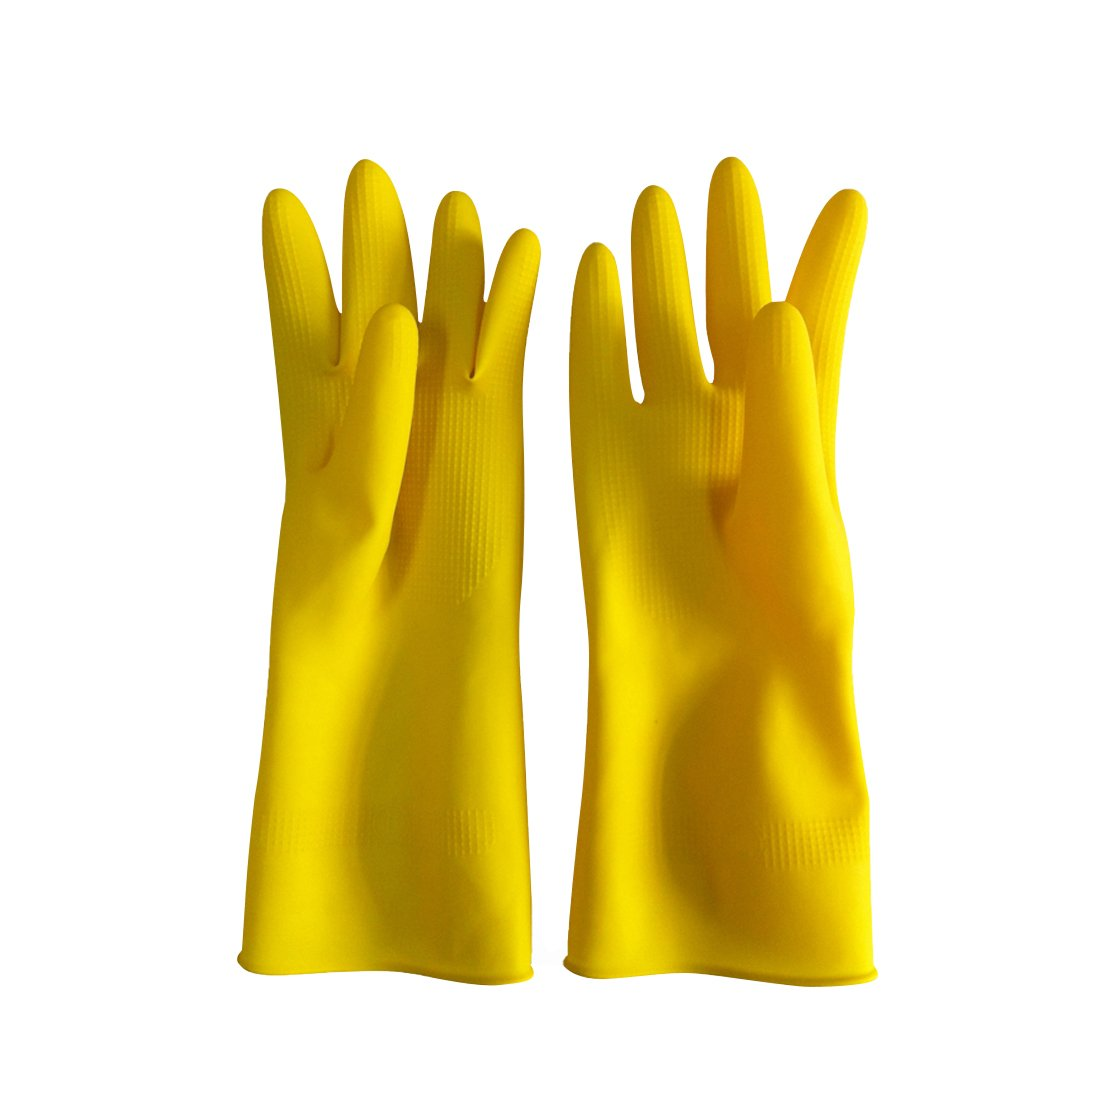 Riverbyland Waterproof And Yellow Rubber Gloves Pack of 10 Pairs